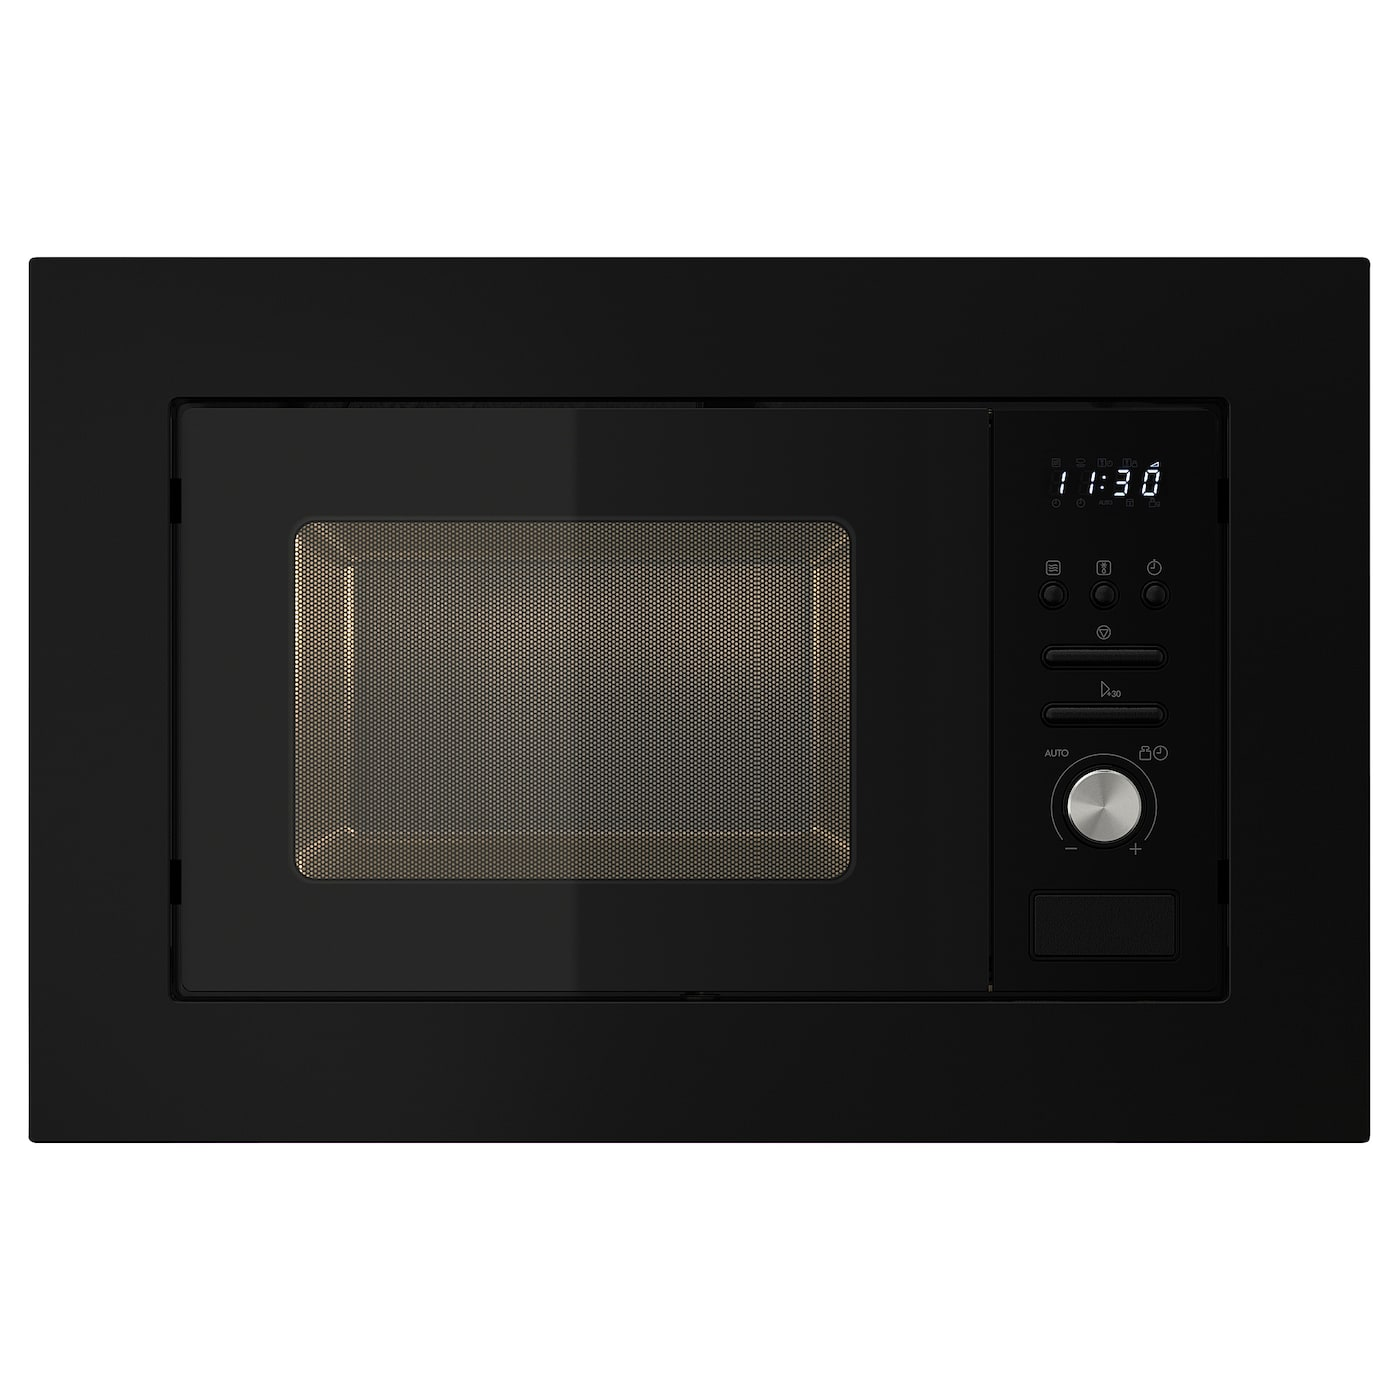 IKEA VÄRMD microwave oven 5 year guarantee. Read about the terms in the guarantee brochure.